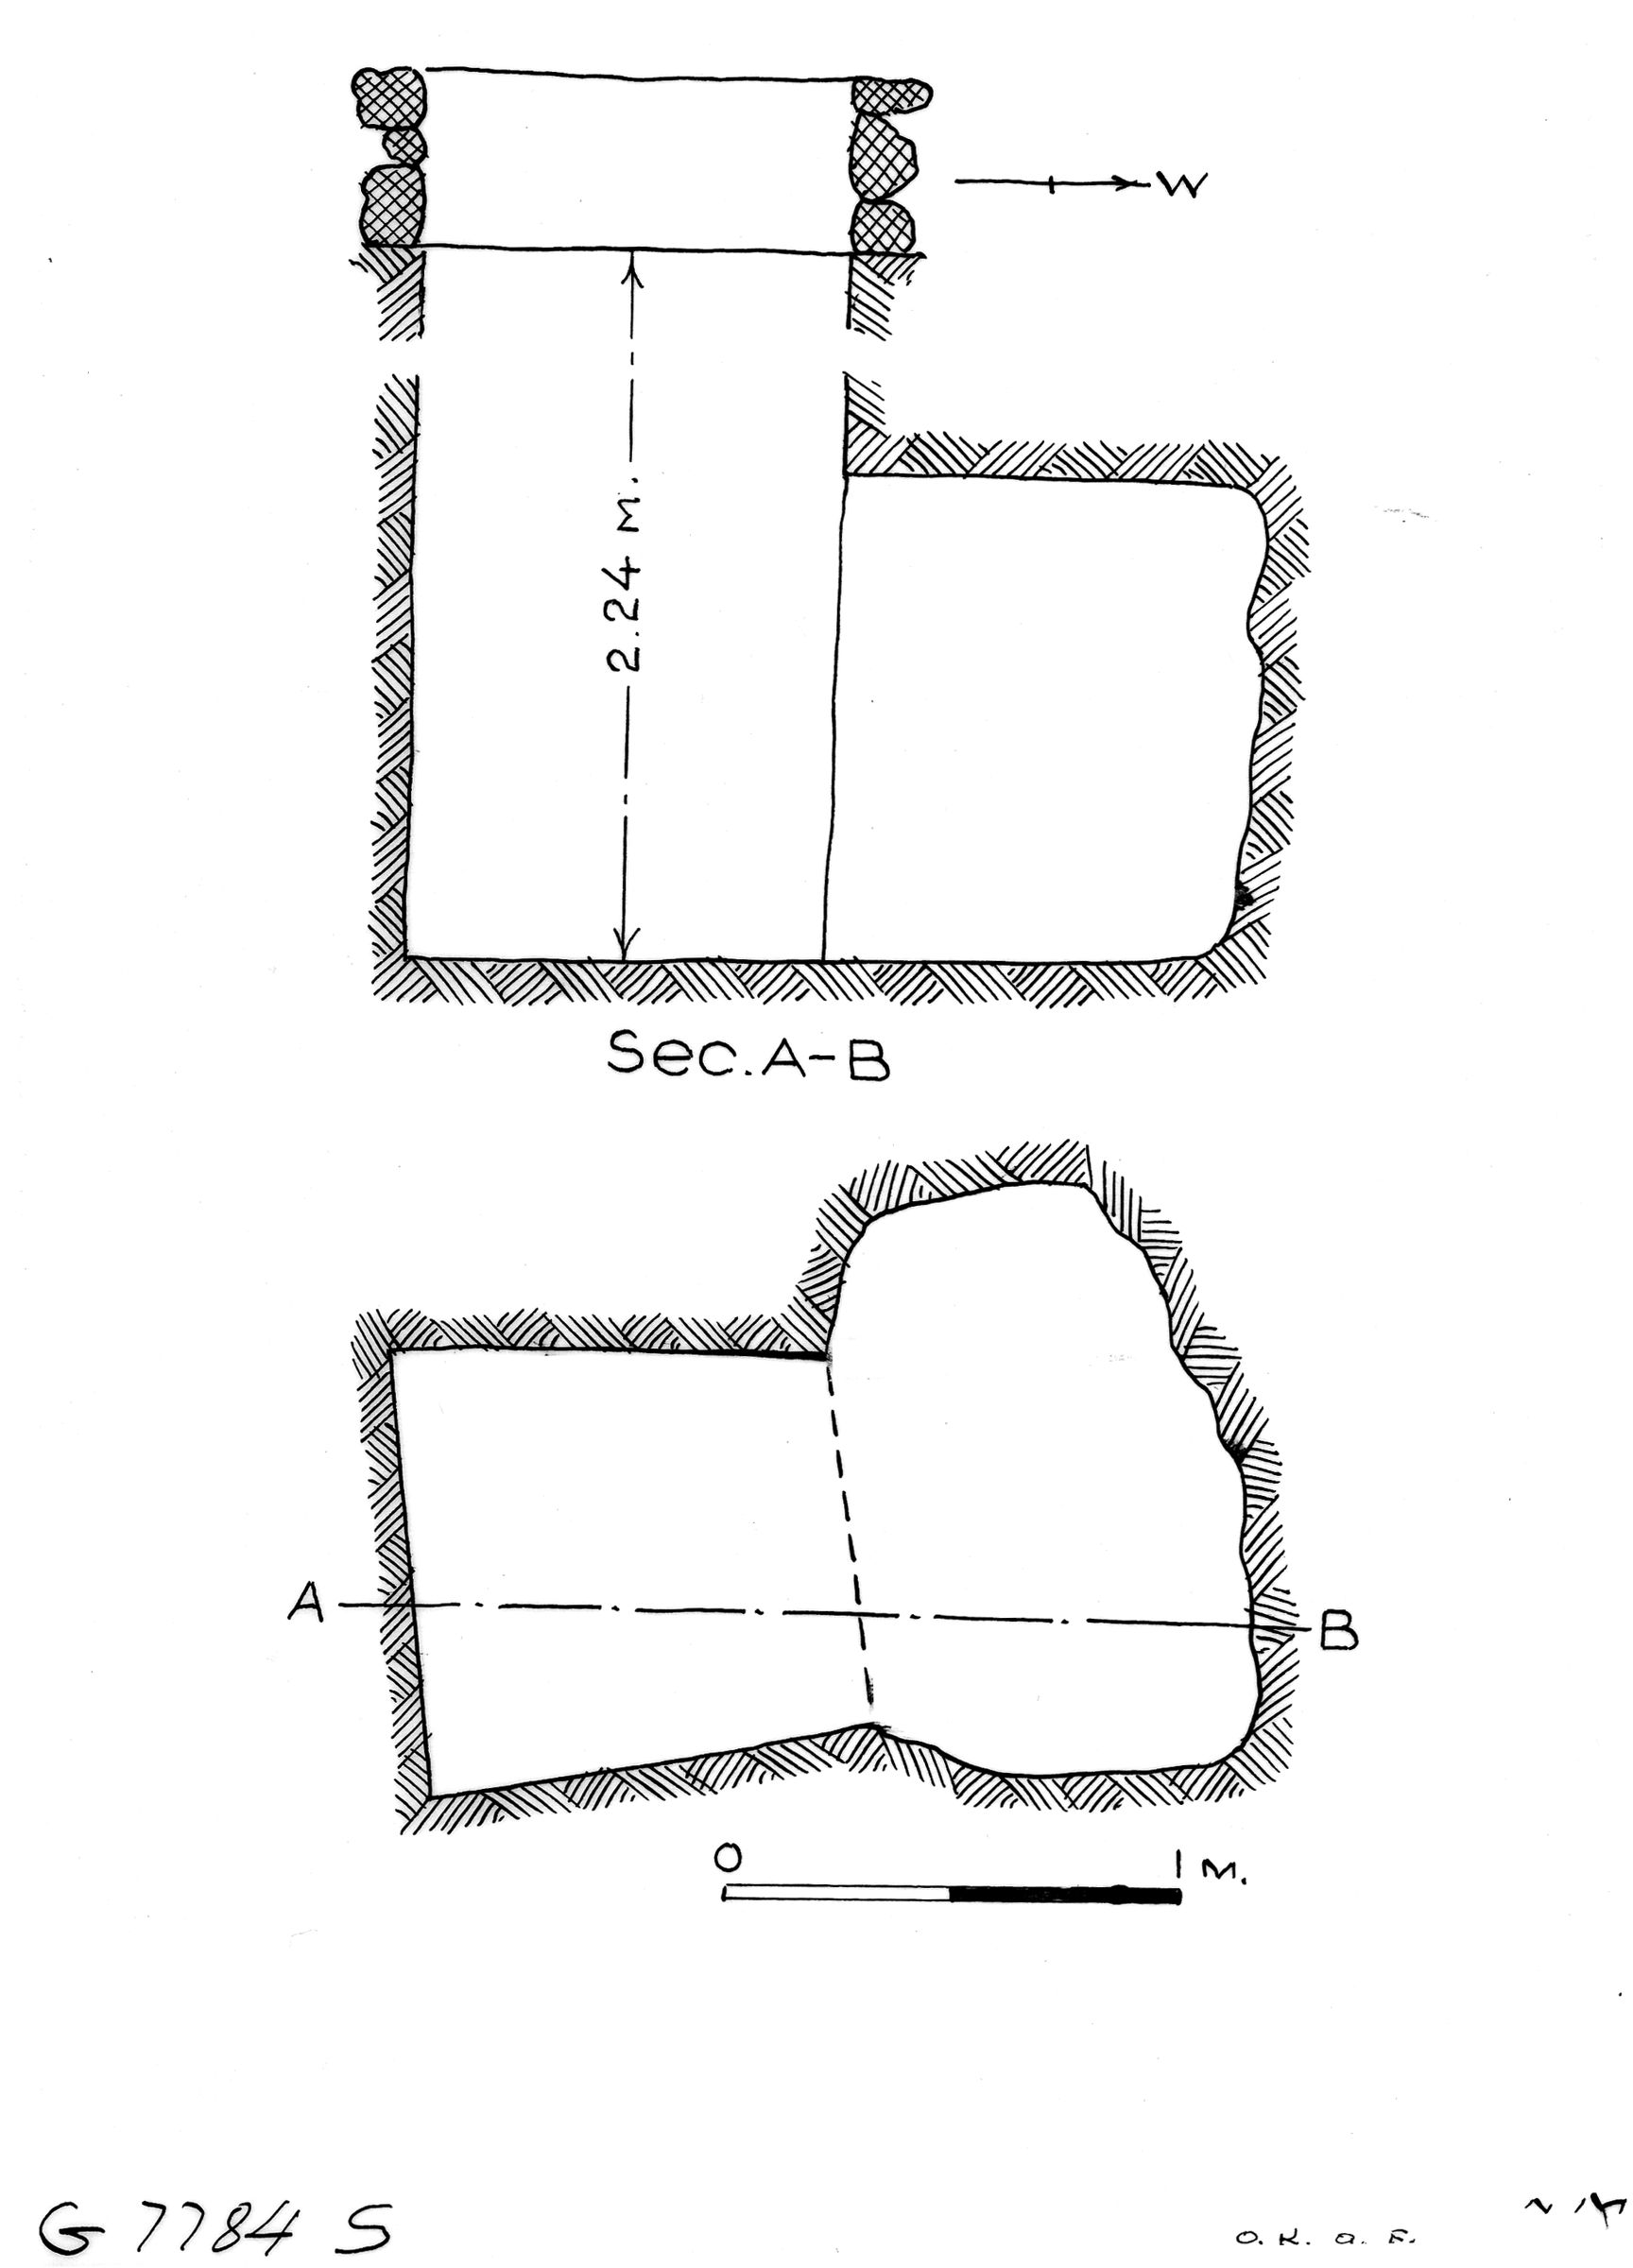 Maps and plans: G 7784, Shaft S